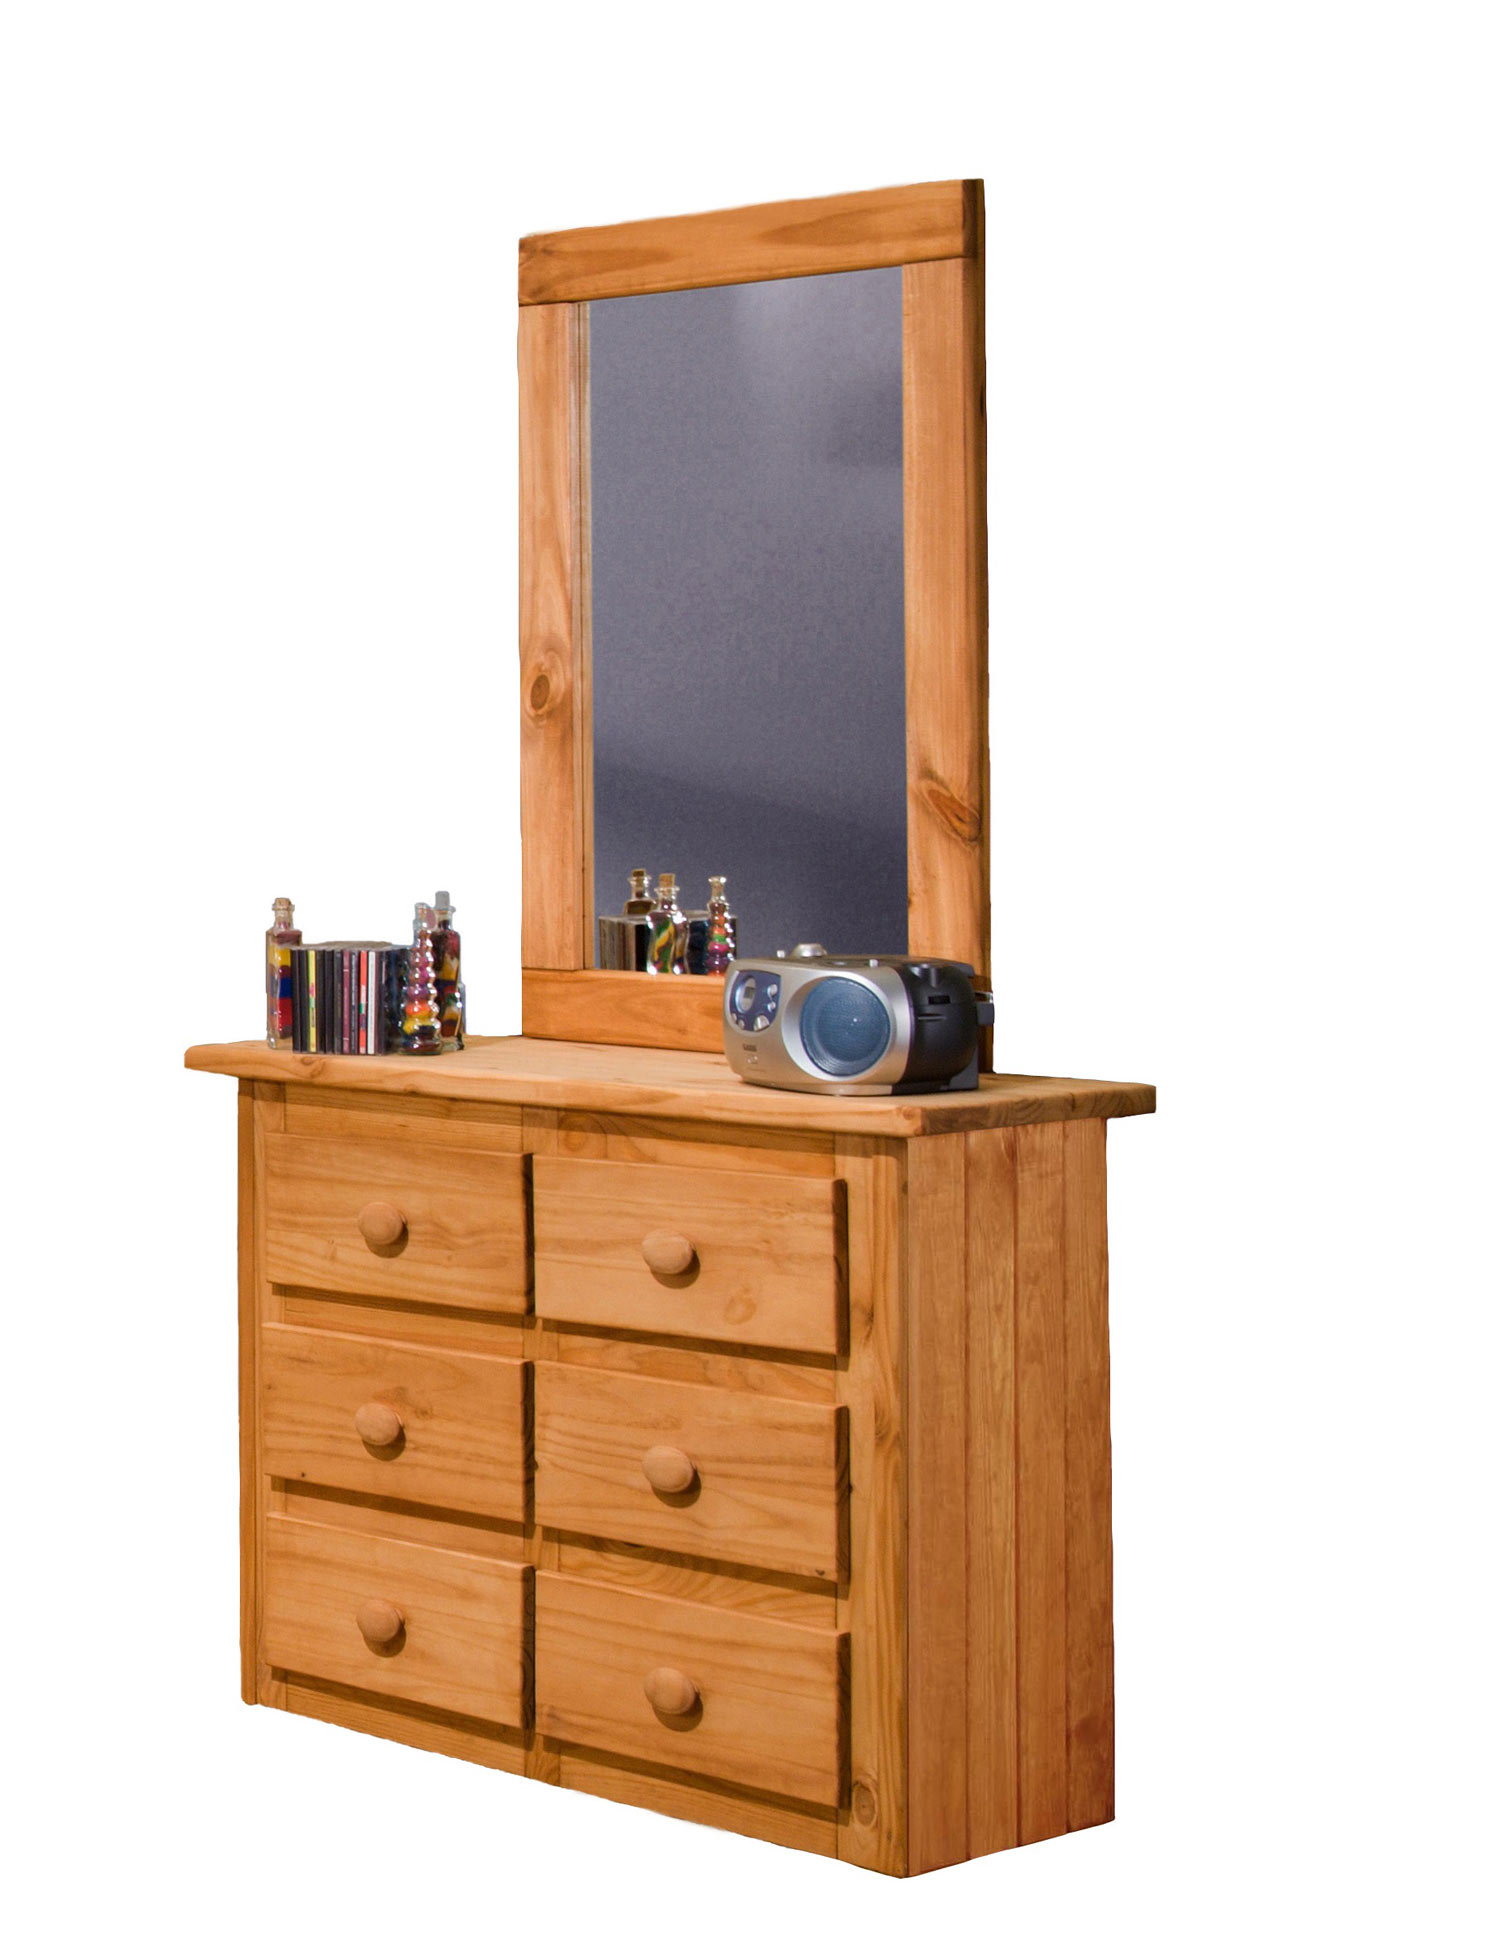 Chelsea Home 31006-201 Mini 6 Drawer Dresser with Mirror - Ginger Stain